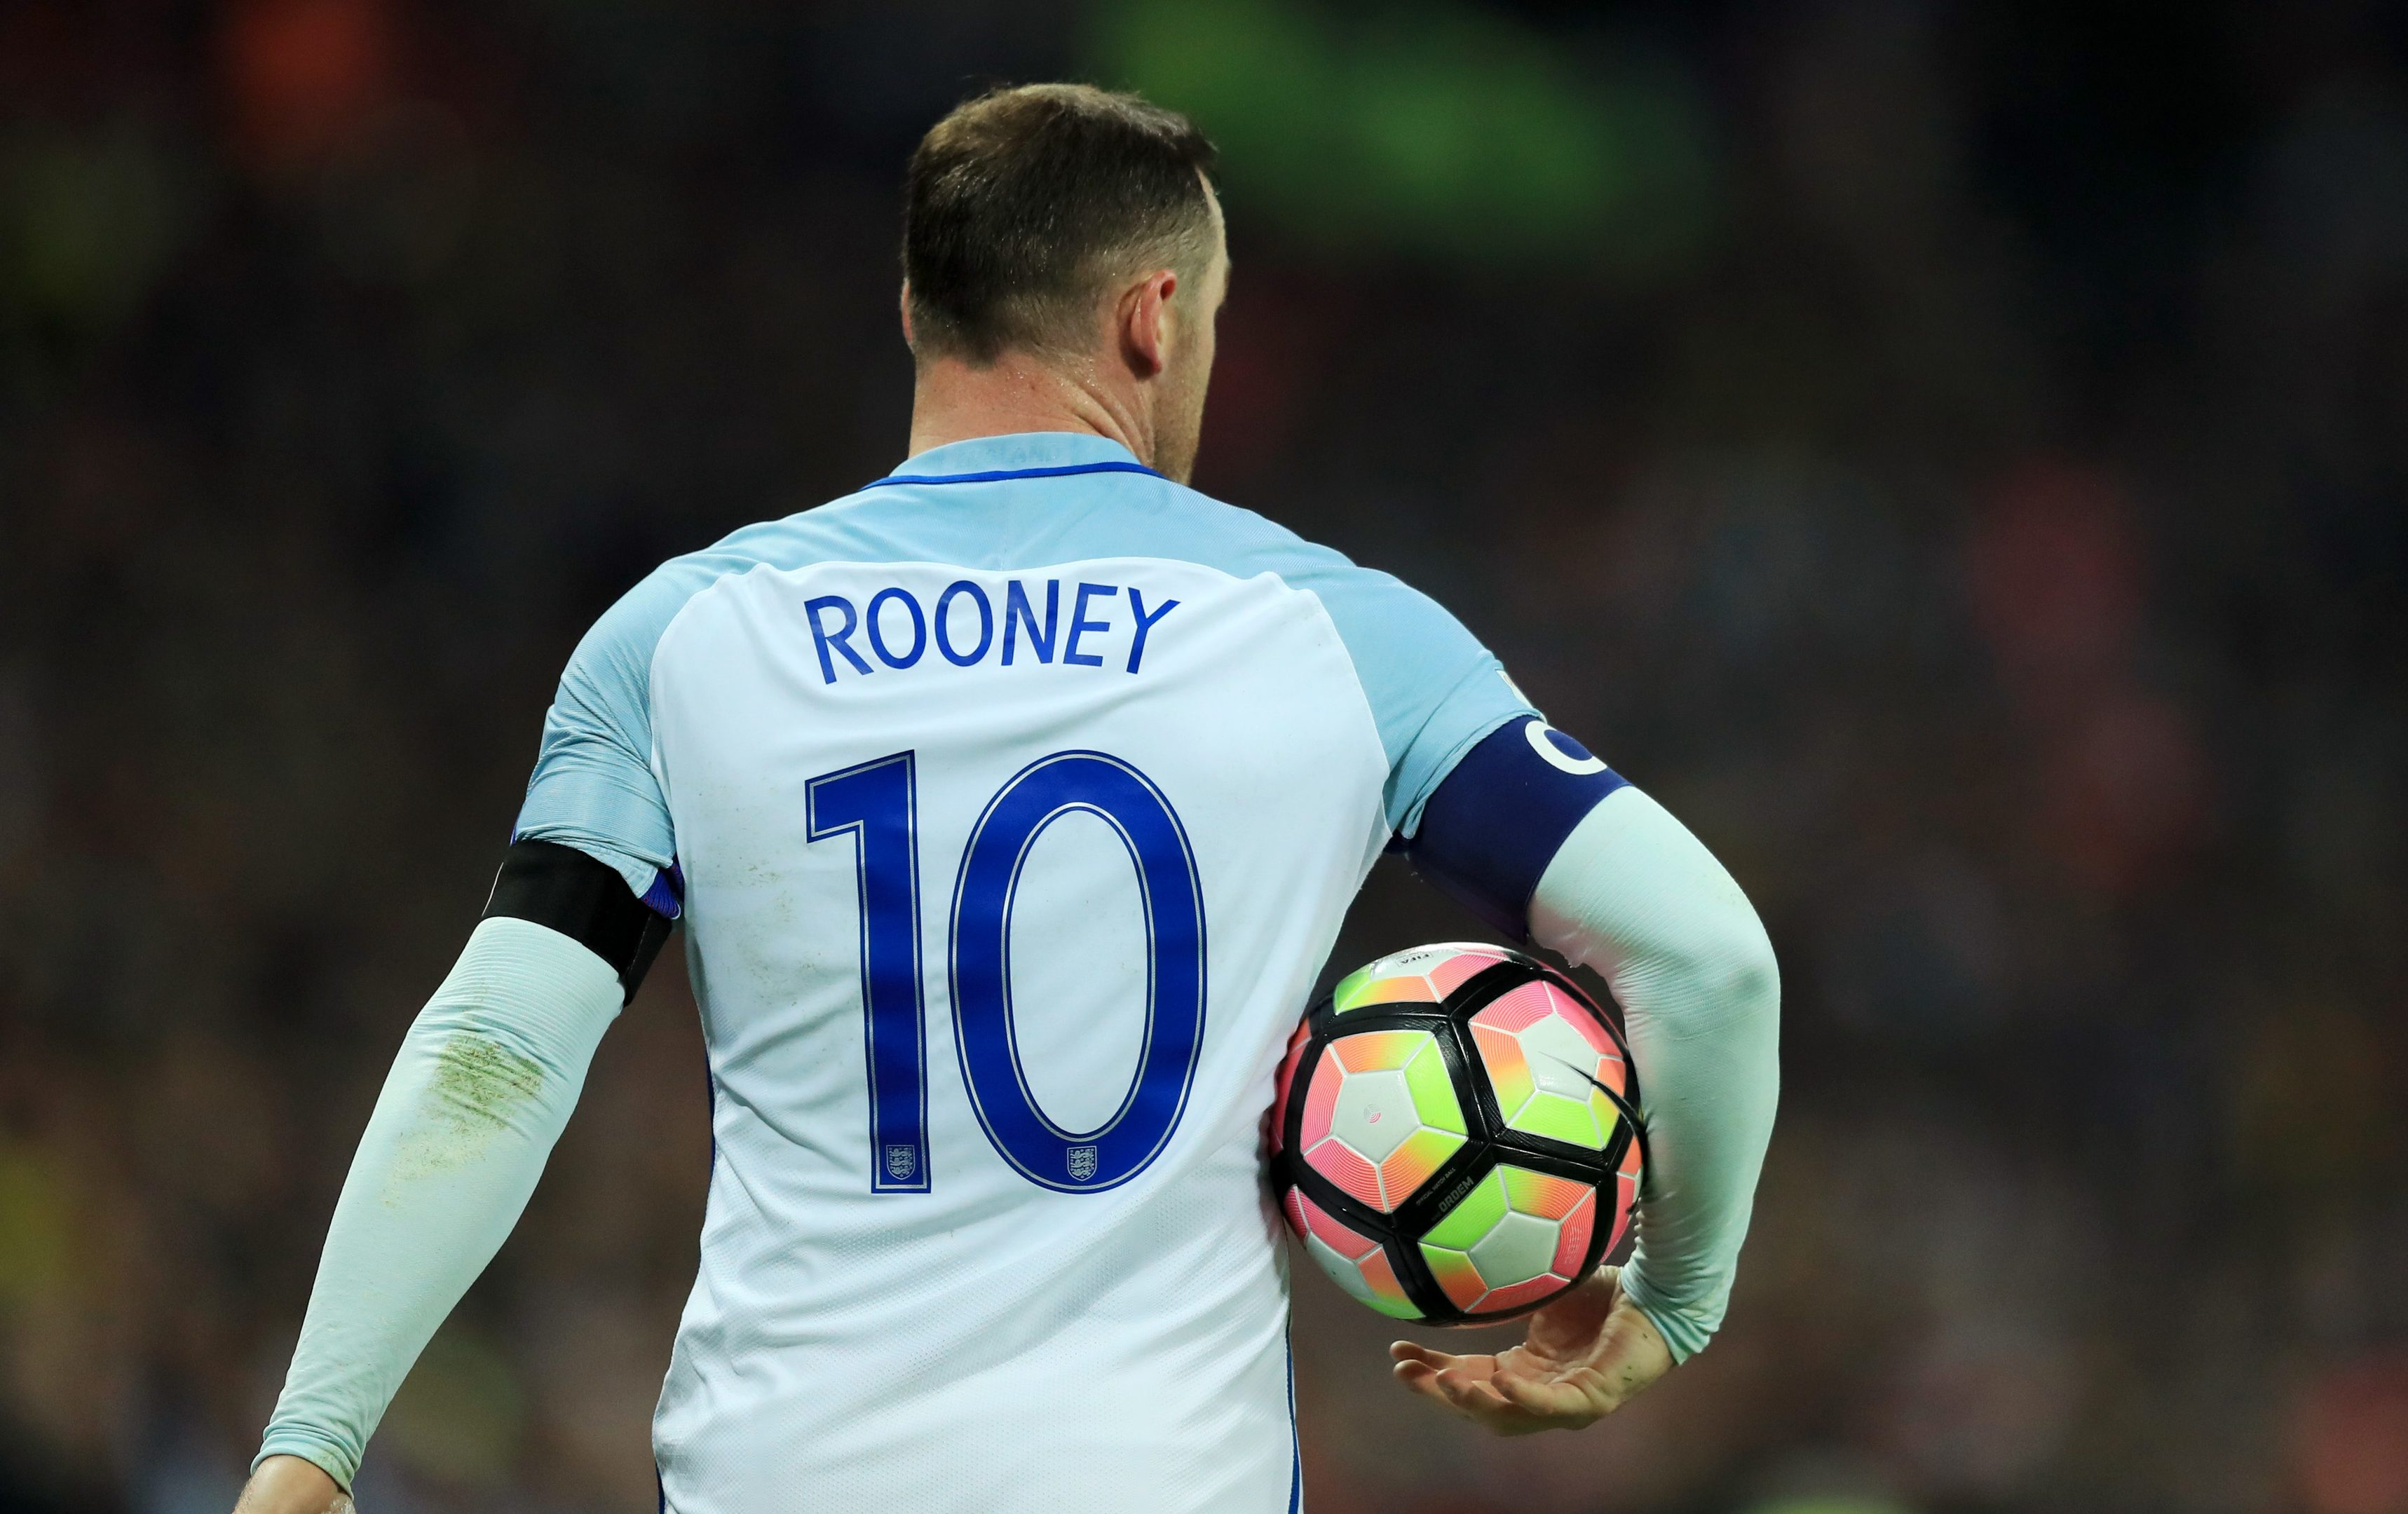 Wayne Rooney is one player Scotland will not have to worry about.